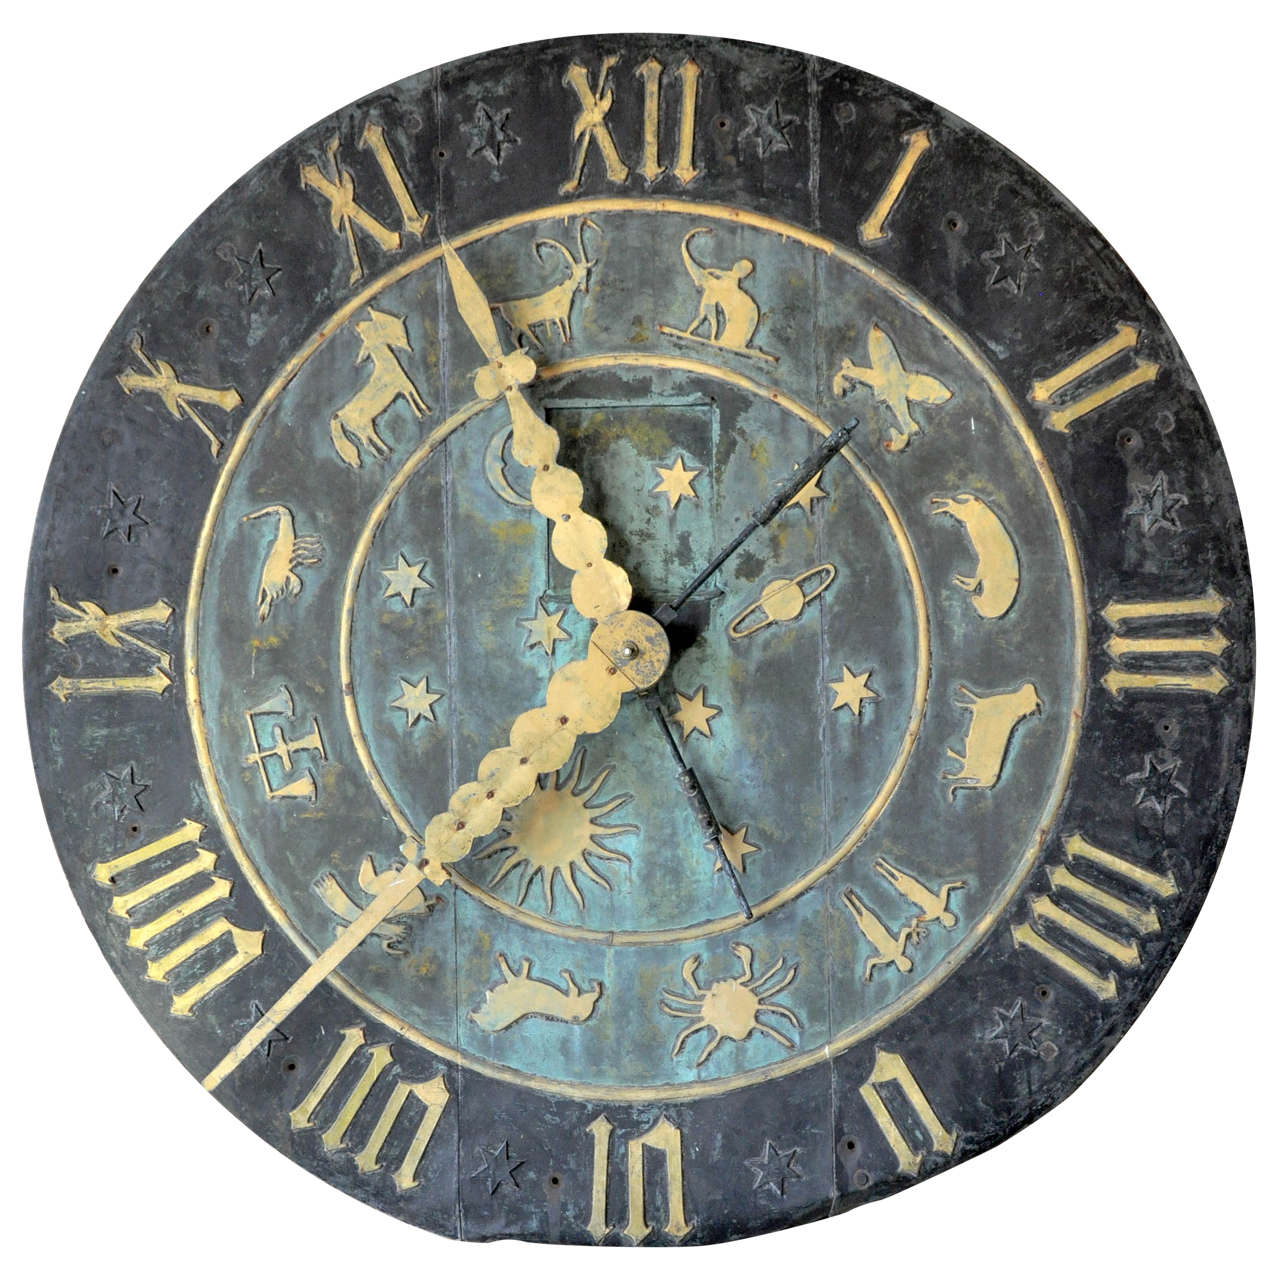 Zodiac Clock Face From The Schlitz Brewery For Sale At 1stdibs